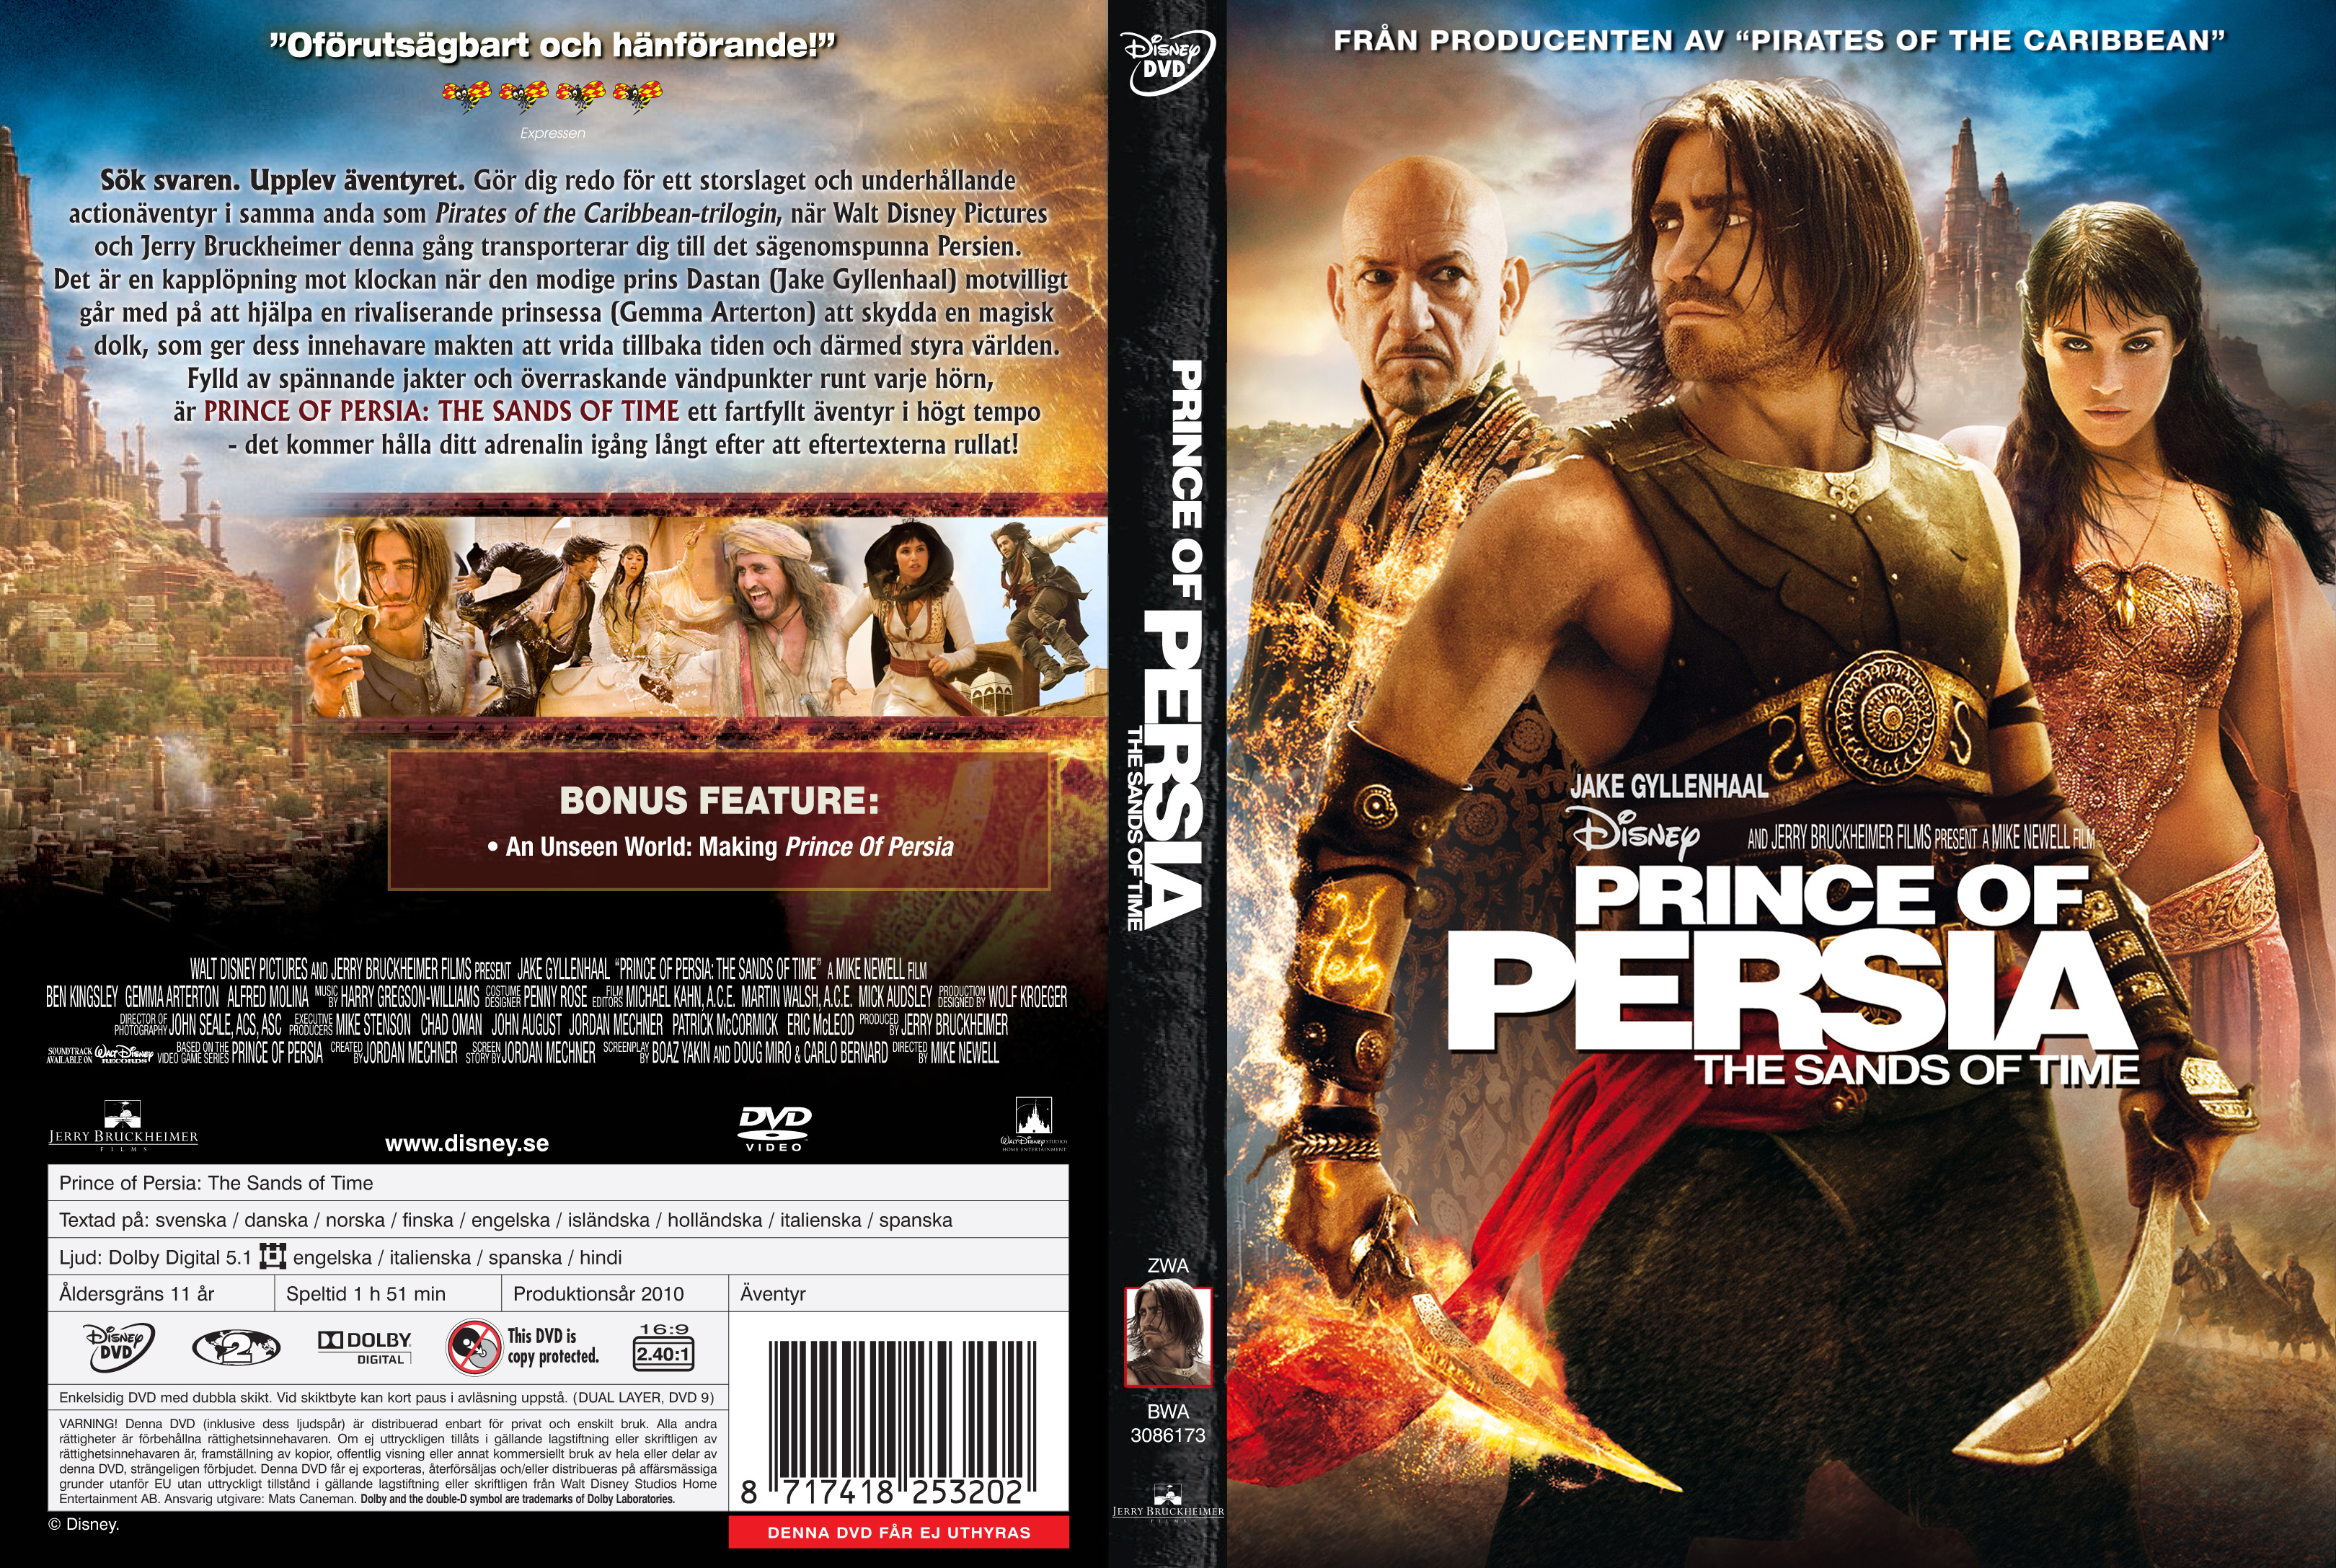 Covers Box Sk Prince Of Persia The Sands Of Time 2010 High Quality Dvd Blueray Movie